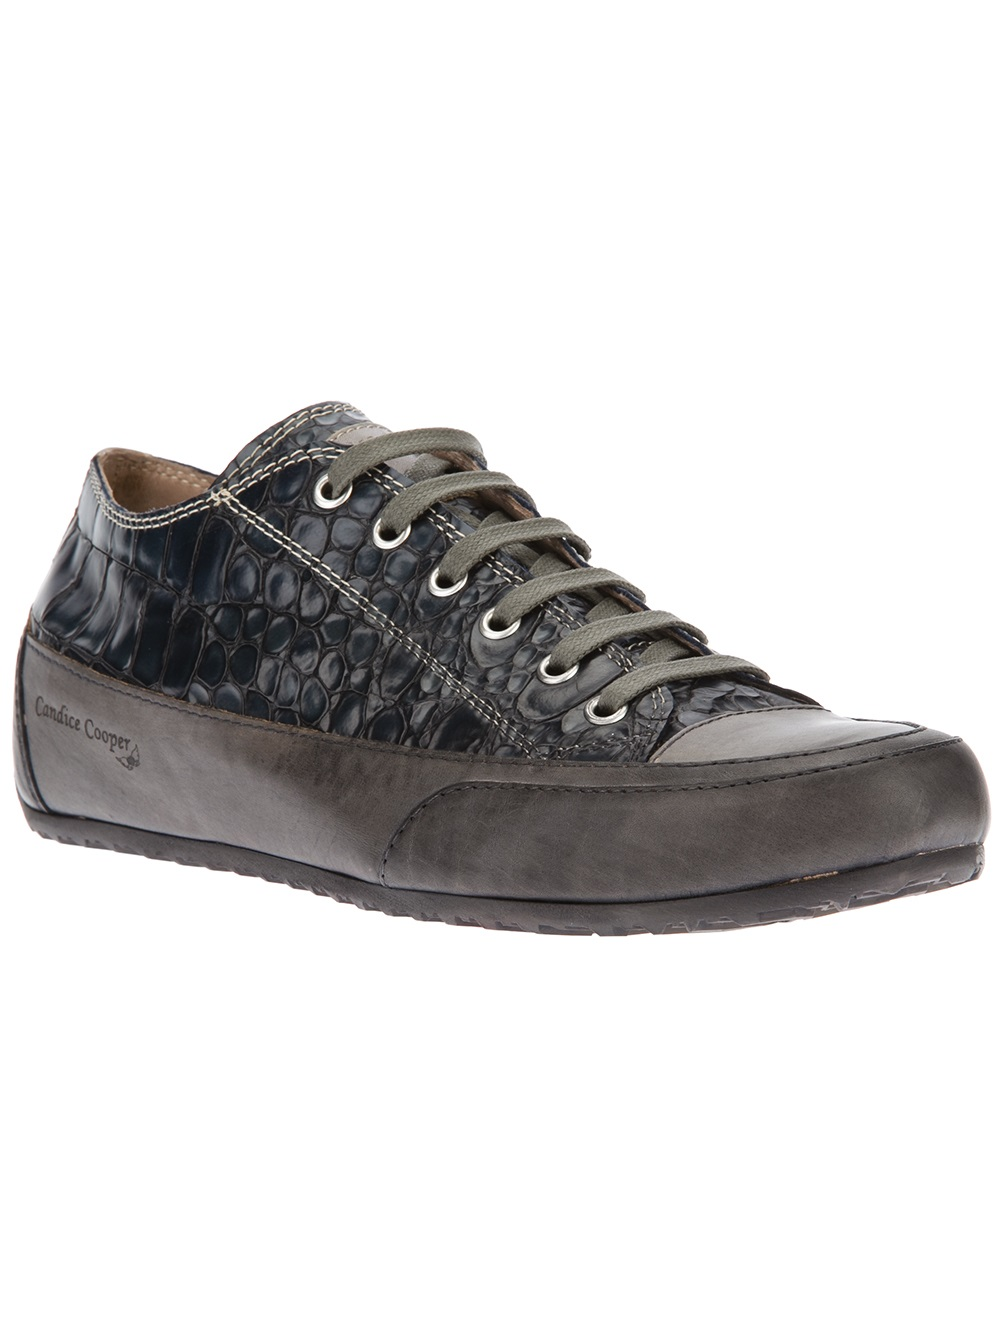 candice cooper crocodile print leather sneakers in gray lyst. Black Bedroom Furniture Sets. Home Design Ideas